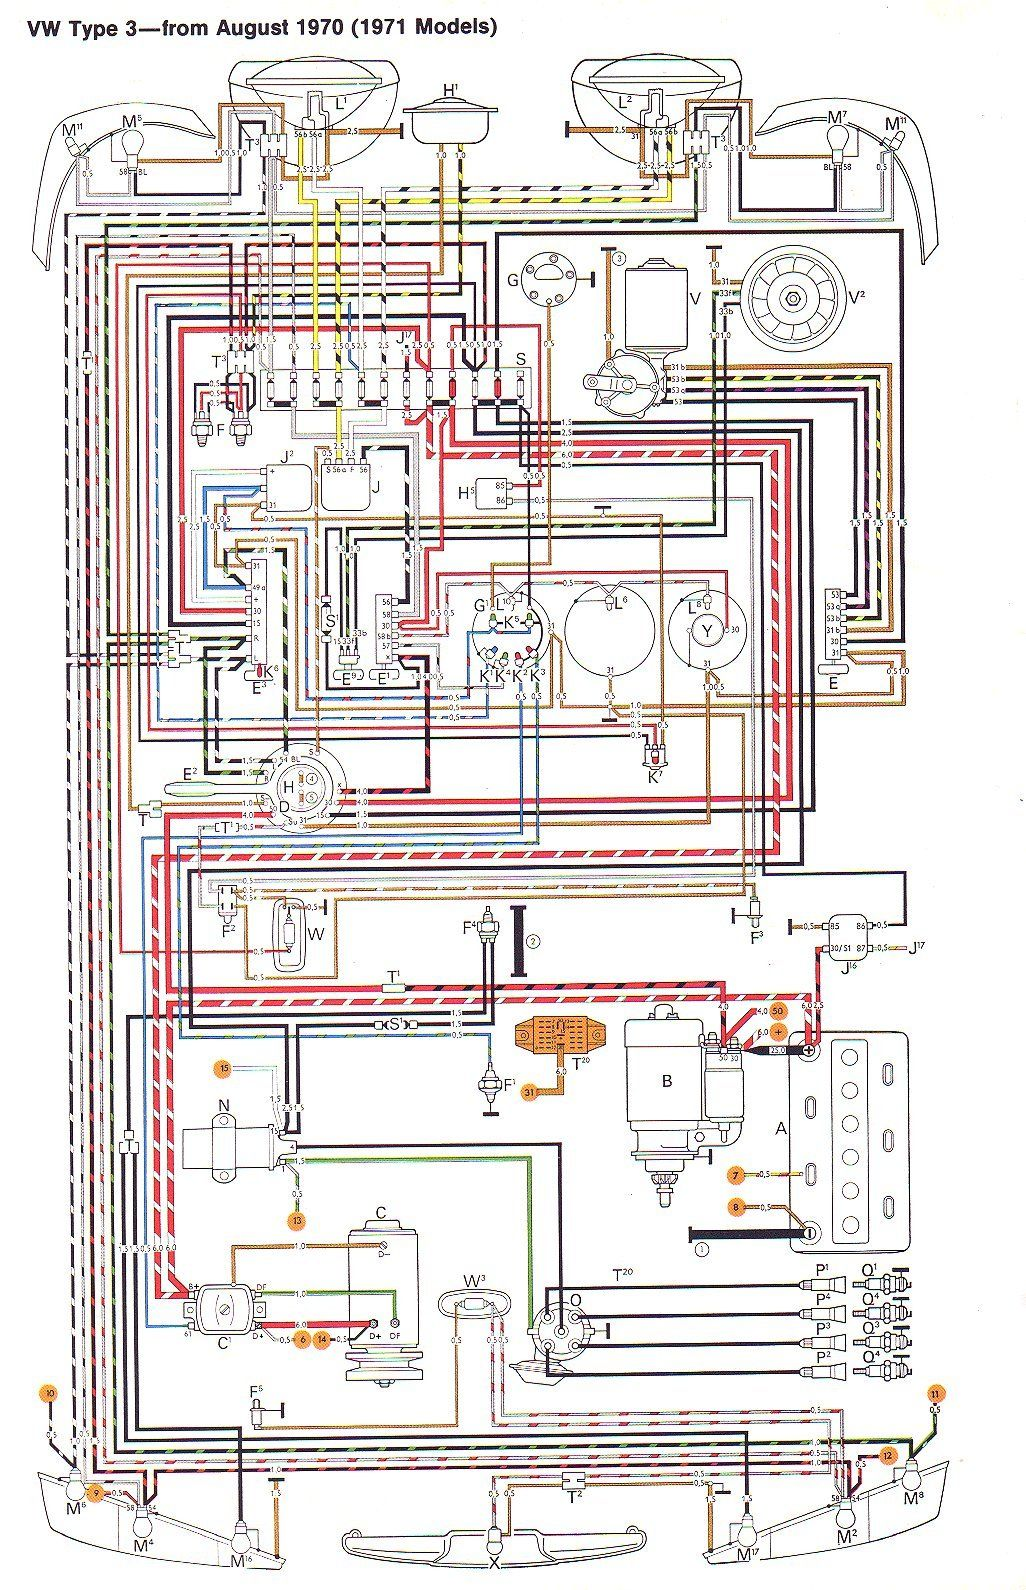 71 vw t3 wiring diagram | ruthie | pinterest | volkswagen ... 1971 vw bus fuse box diagram 1971 vw bus engine diagram #12